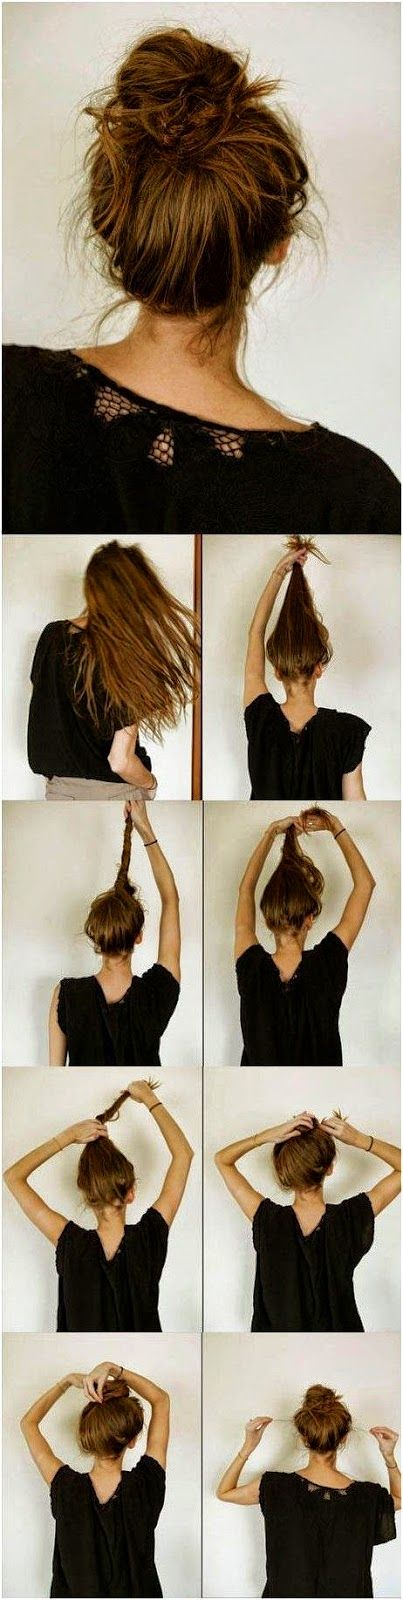 5 Easy Messy Buns For Long Hair Tutorial  I can NEVER get a bun to stay the way i want it to, and the one in the pic actually works for me! F I N A L L Y: